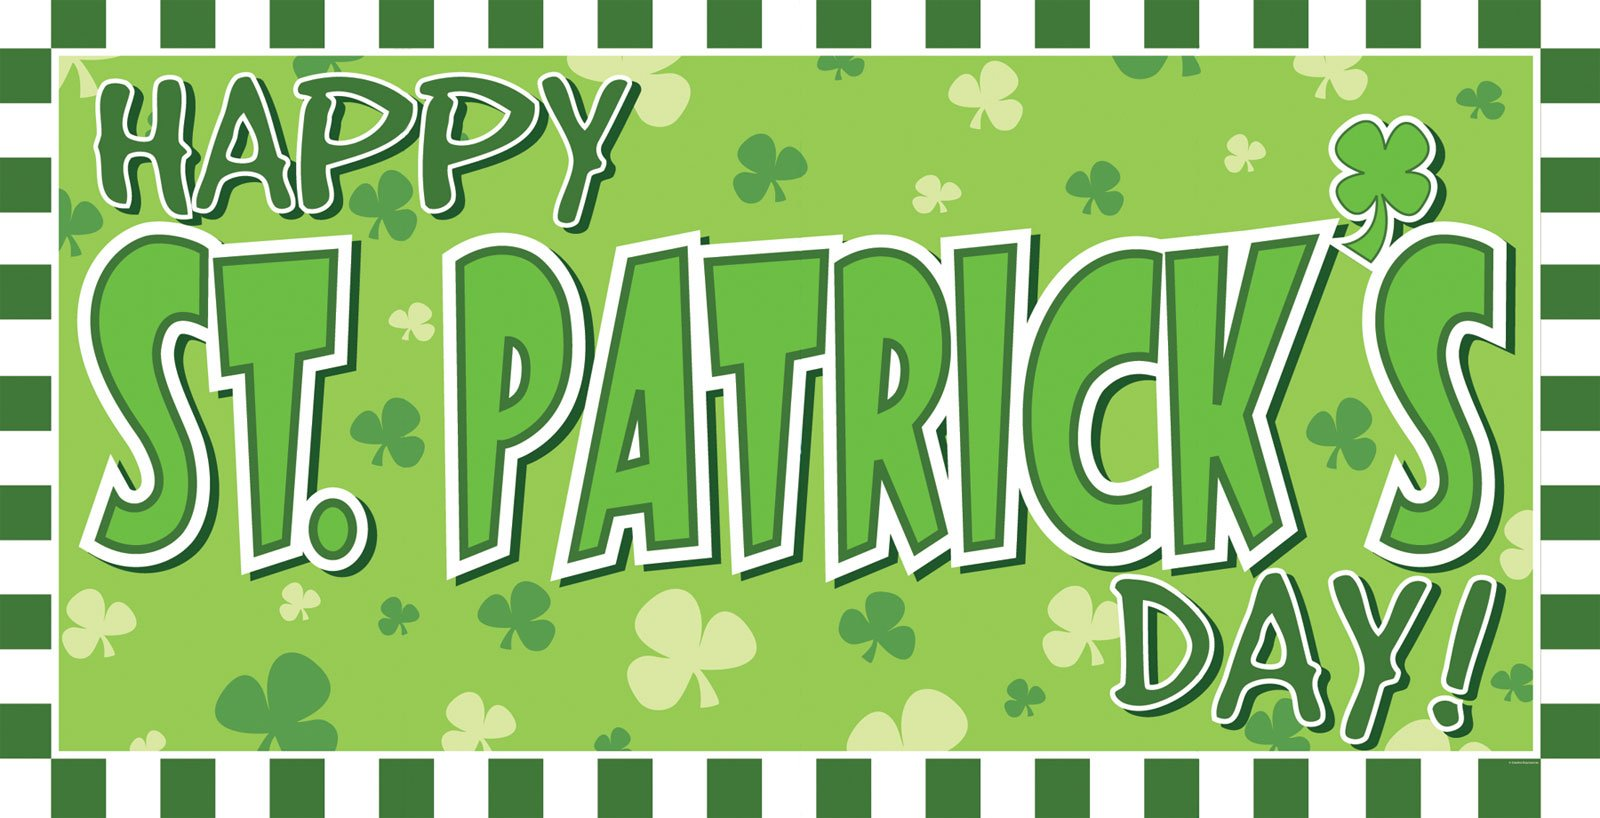 0e352a6a4 Know The Facts and Drink Safely This St. Patrick's Day